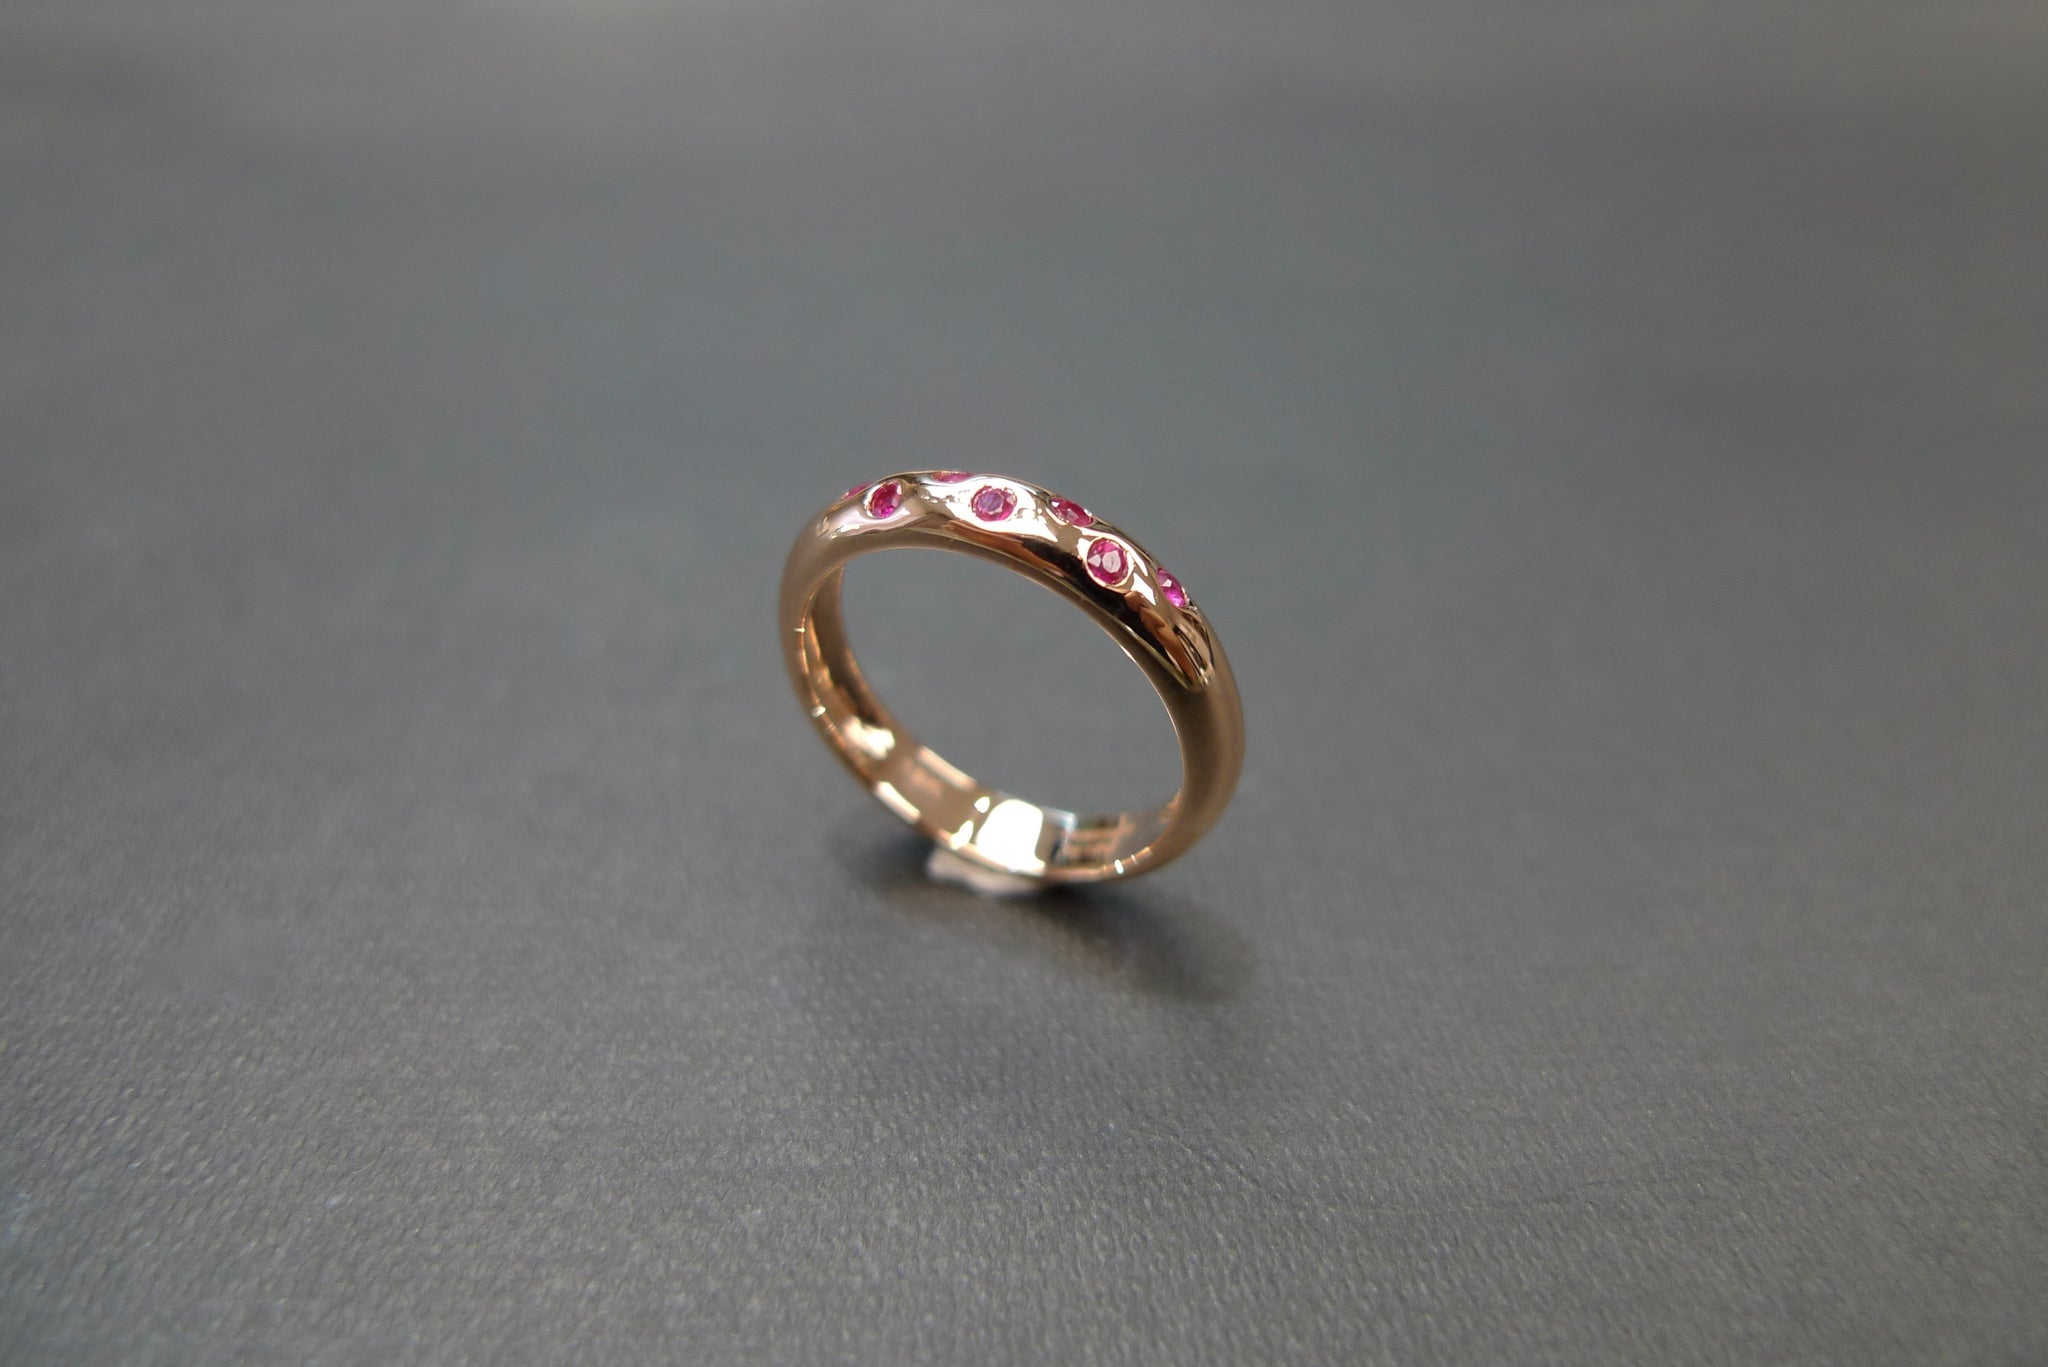 Ruby Wedding Polka Dot Ring in 18K Rose Gold - HN JEWELRY